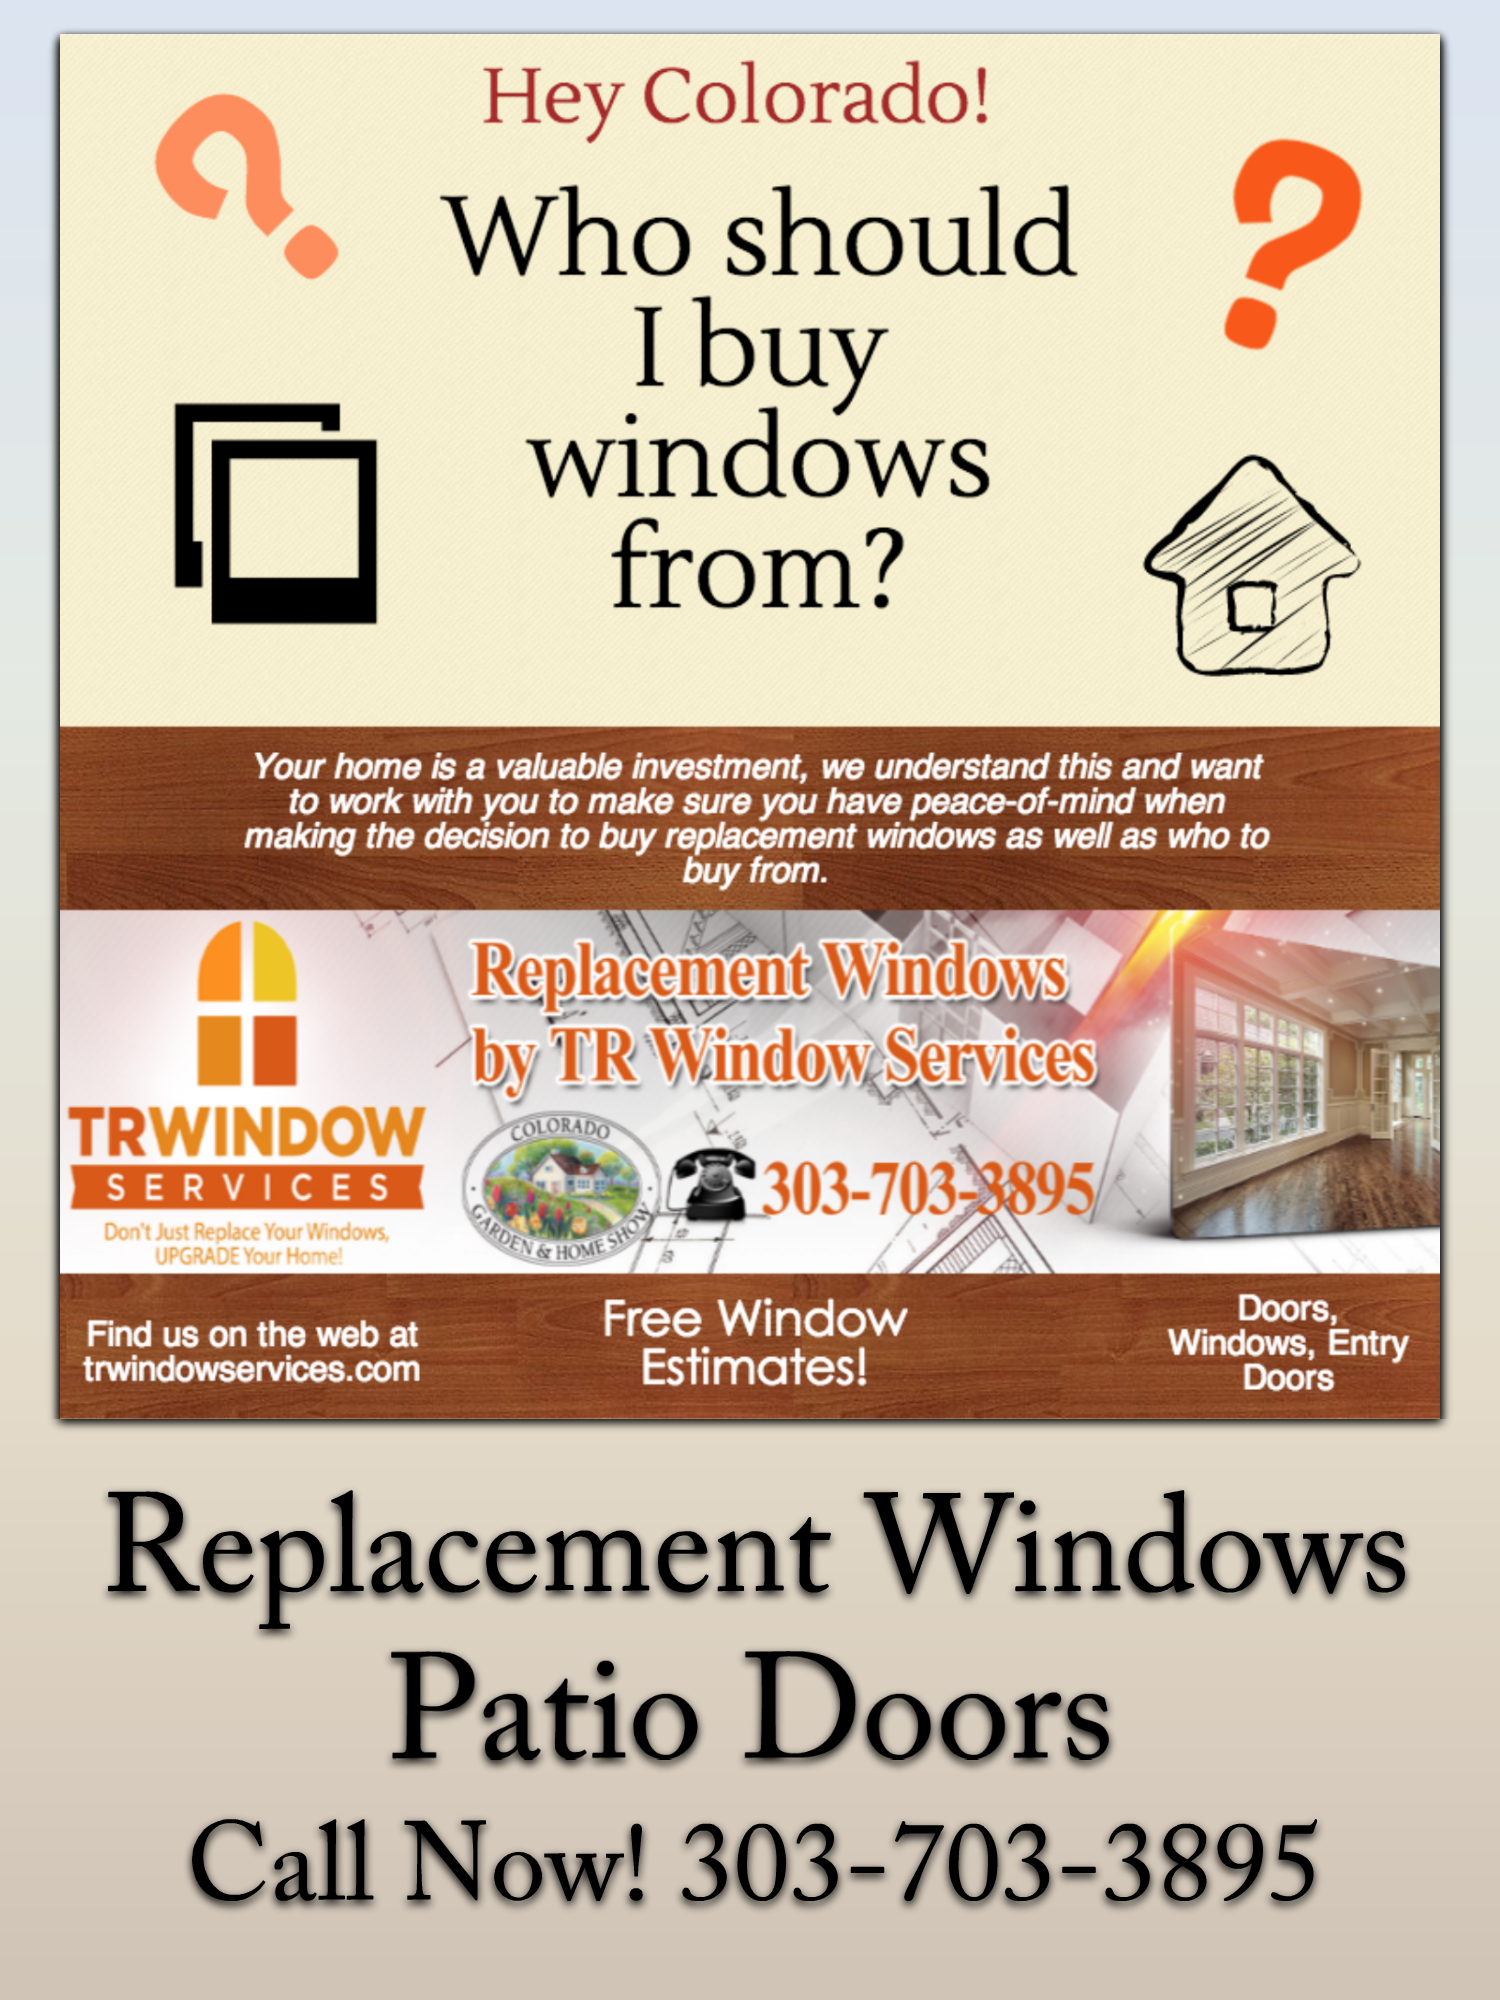 denver replacement windows colorado, denver windows, denver replacement windows blog, denver infographic